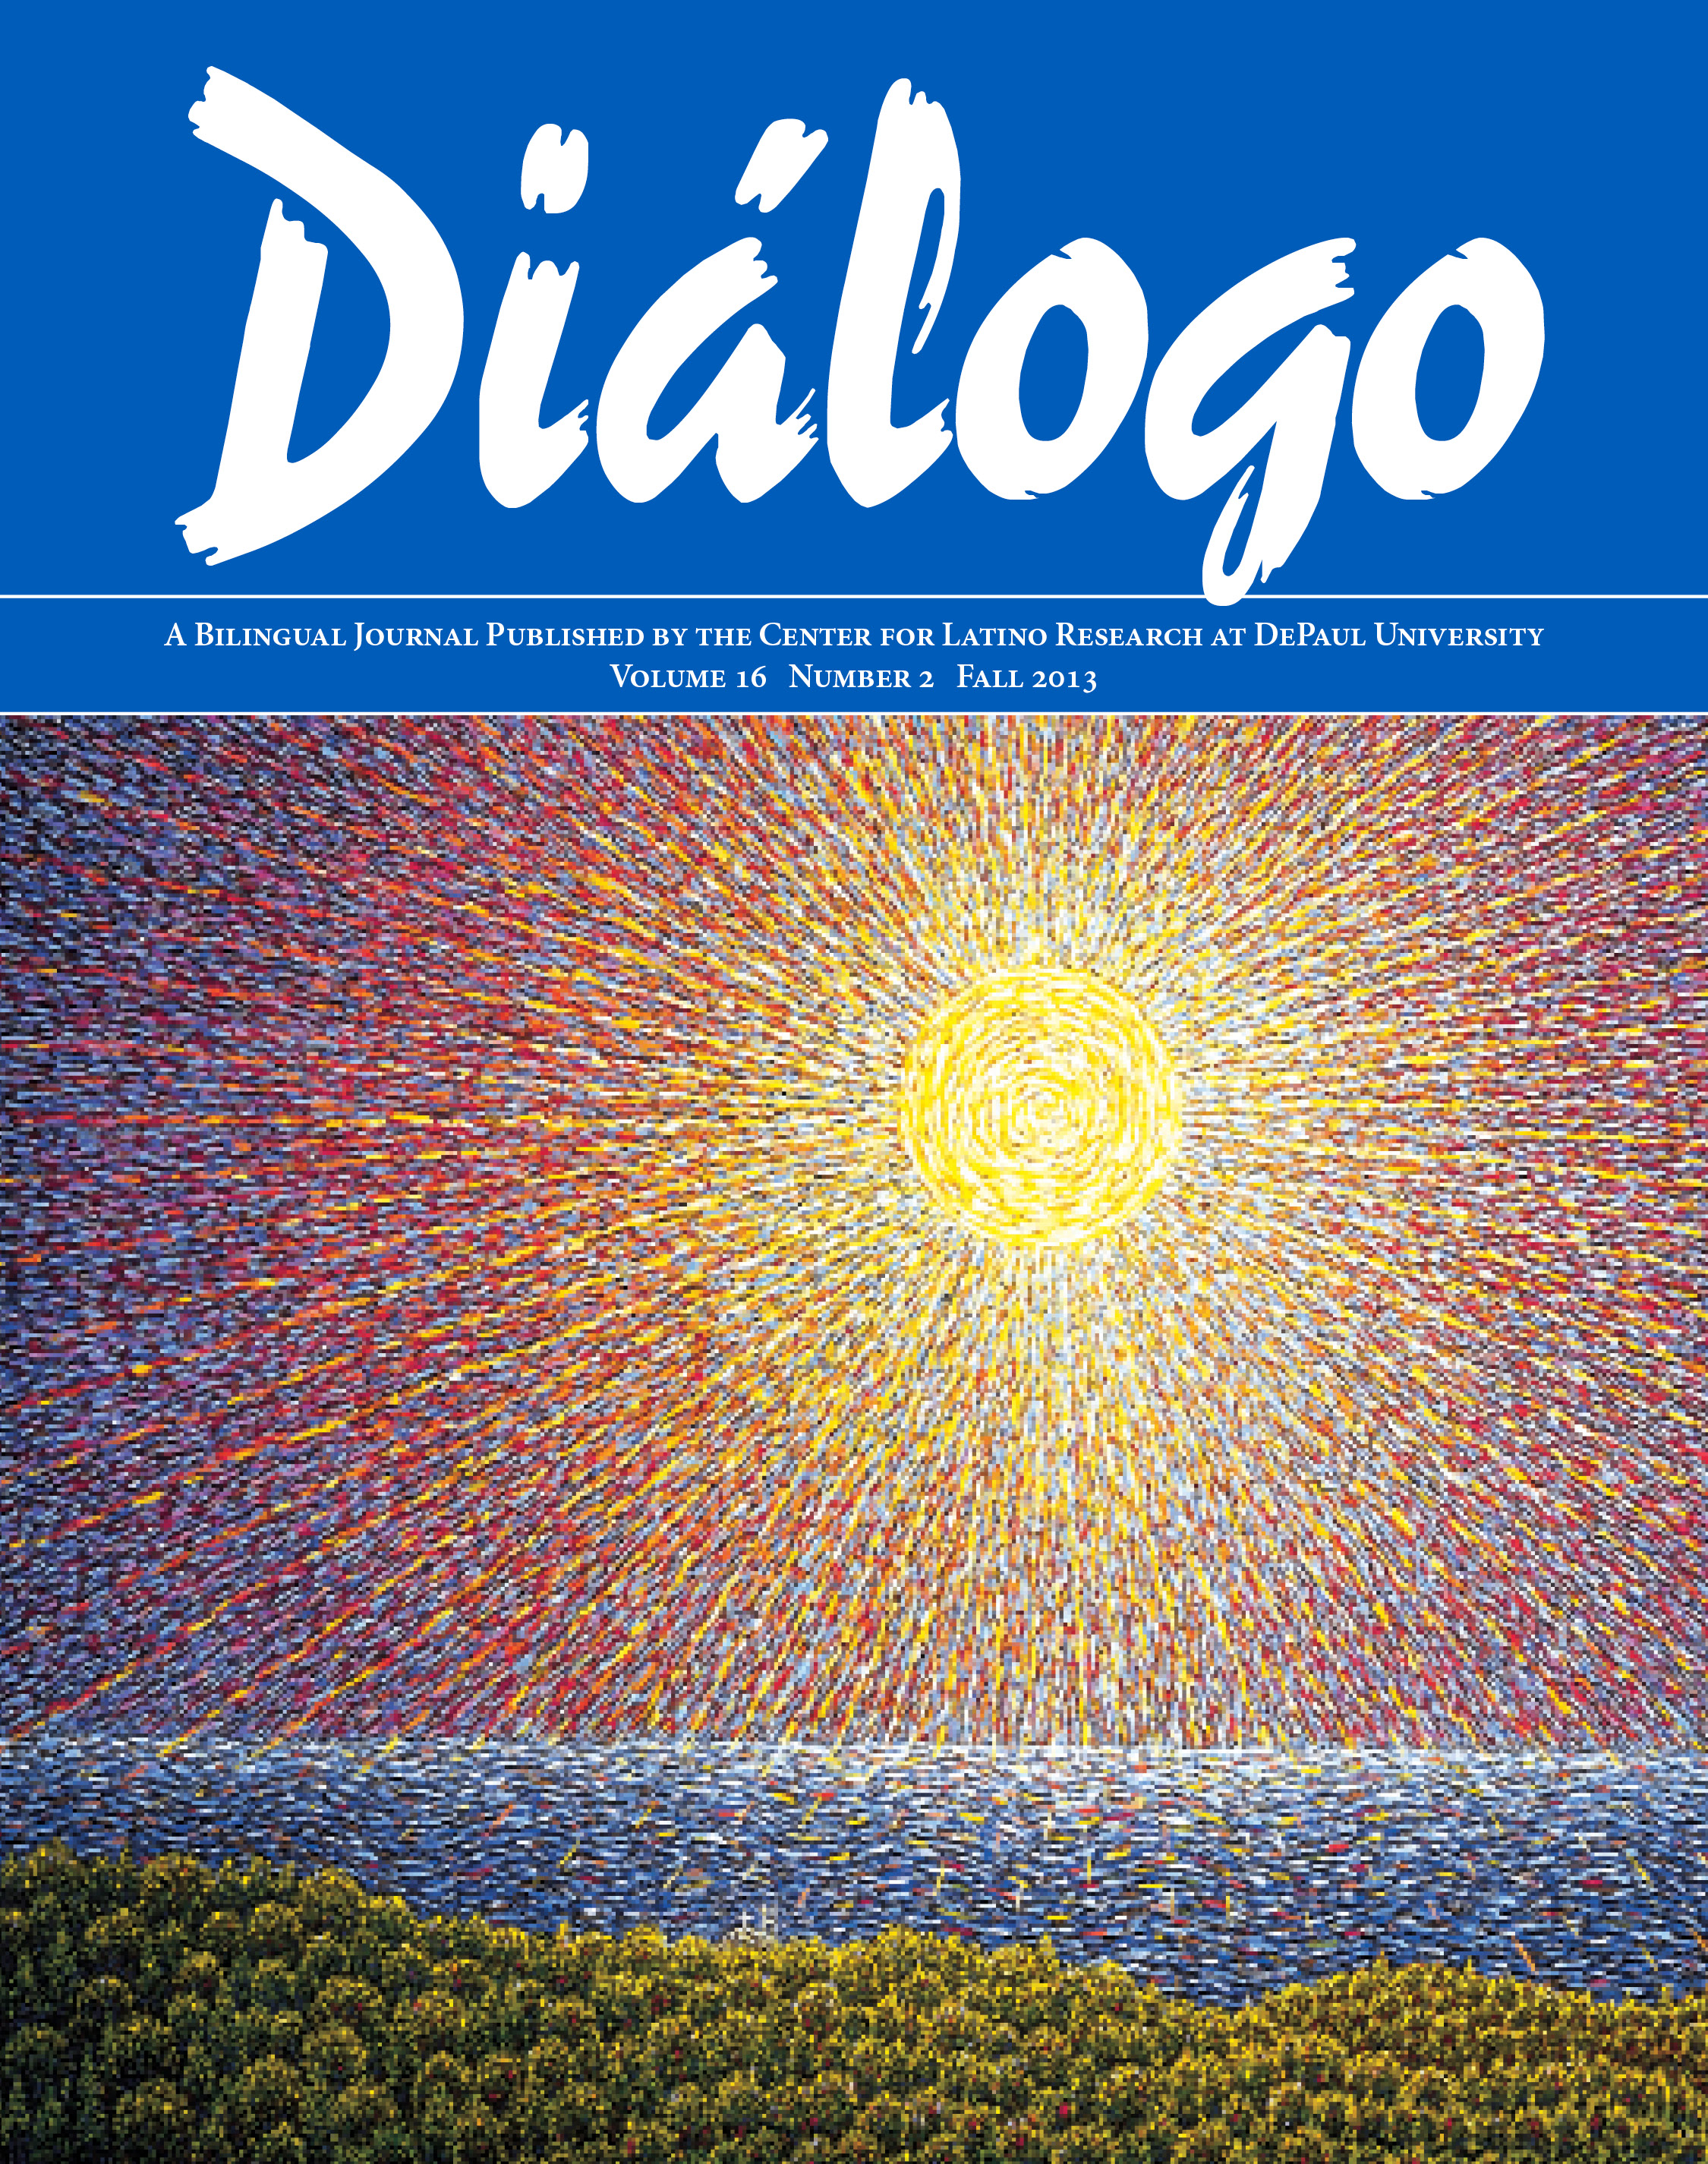 Cover of Diálogo's fall 2013 issue